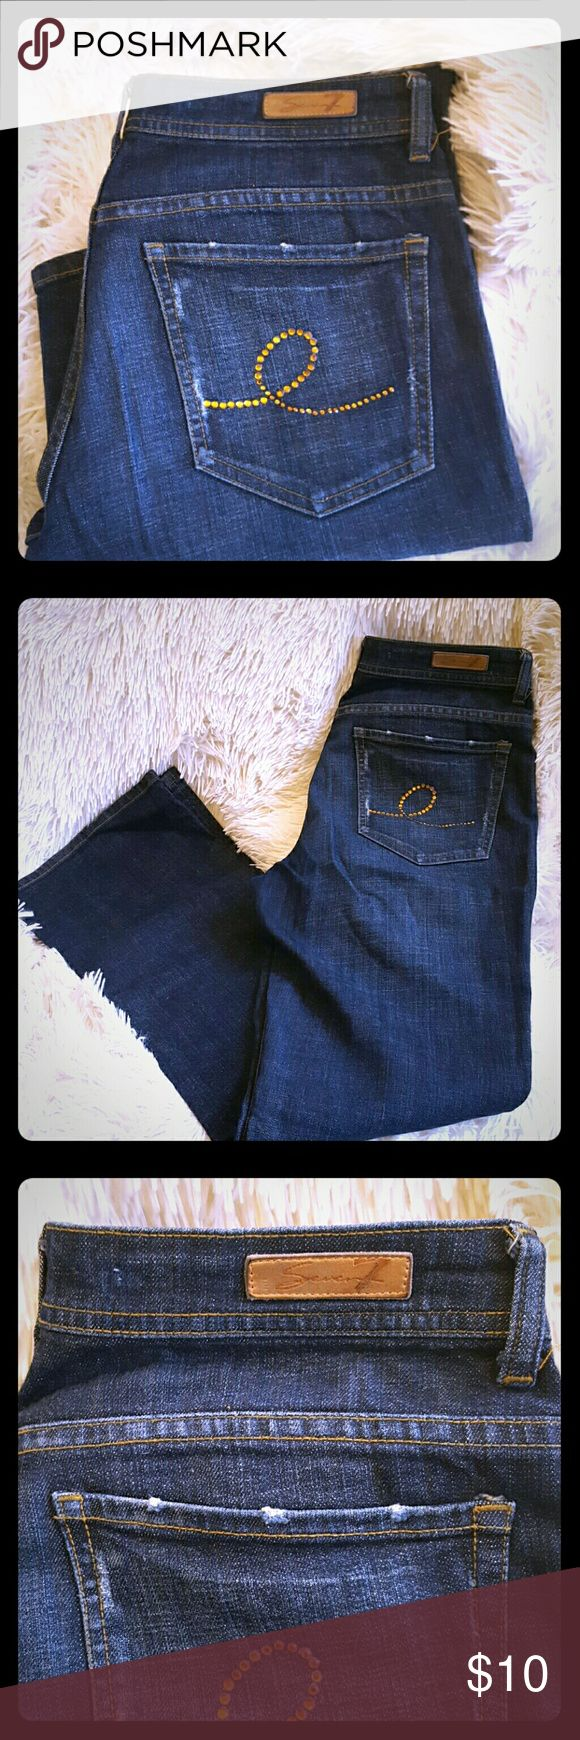 *SEVEN FOR ALL MANKIND* Jeans Flare size 32 *SEVEN FOR ALL MANKIND* Jeans Flare size 32  Only thing wrong with these killer jeans is zipper is busted,view last picture. Only about a $10 fix at dry cleaners.  Comes from a smoke free home!  *Don't forget to check out my other designer items for sale and make me some offers ** Seven7 Jeans